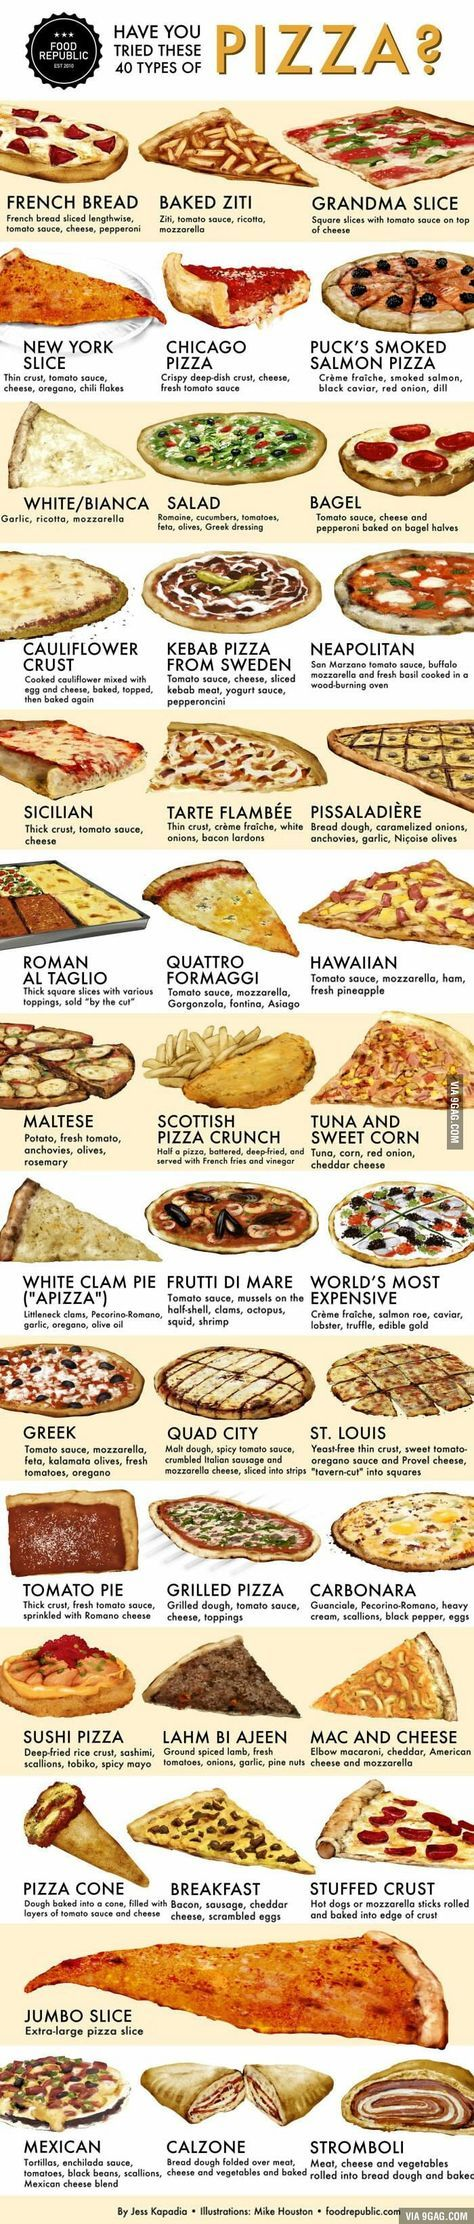 166 best Pizza images on Pinterest | Savory snacks, Baking and Pizza ...